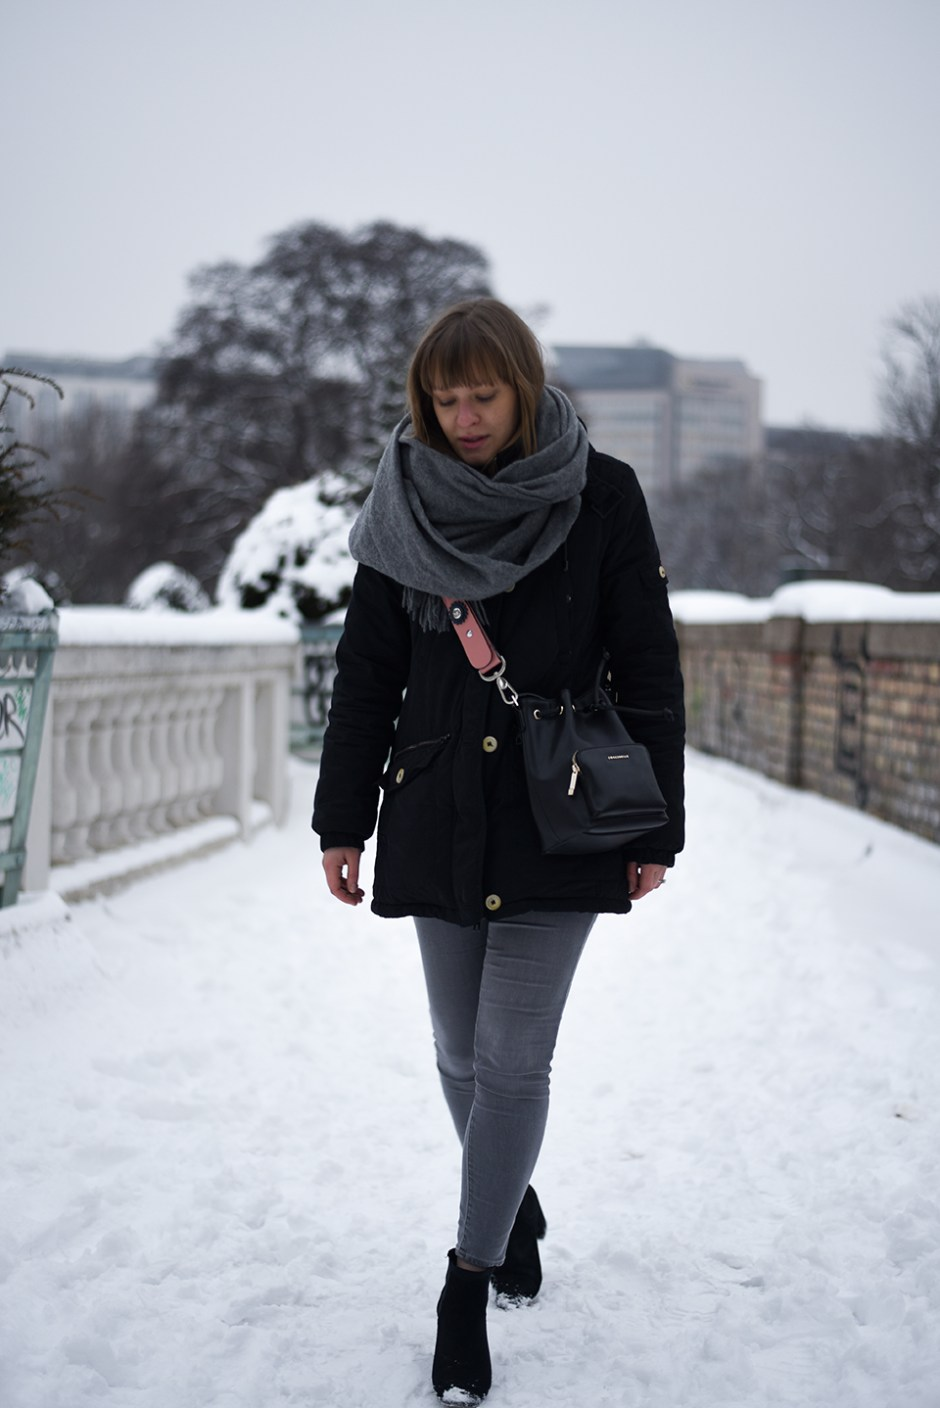 style-sandbox-blog-your-style-oversized-lookbook-winter-wonderland-fashionblog-lifestyleblog-vienna-wien-austria-7